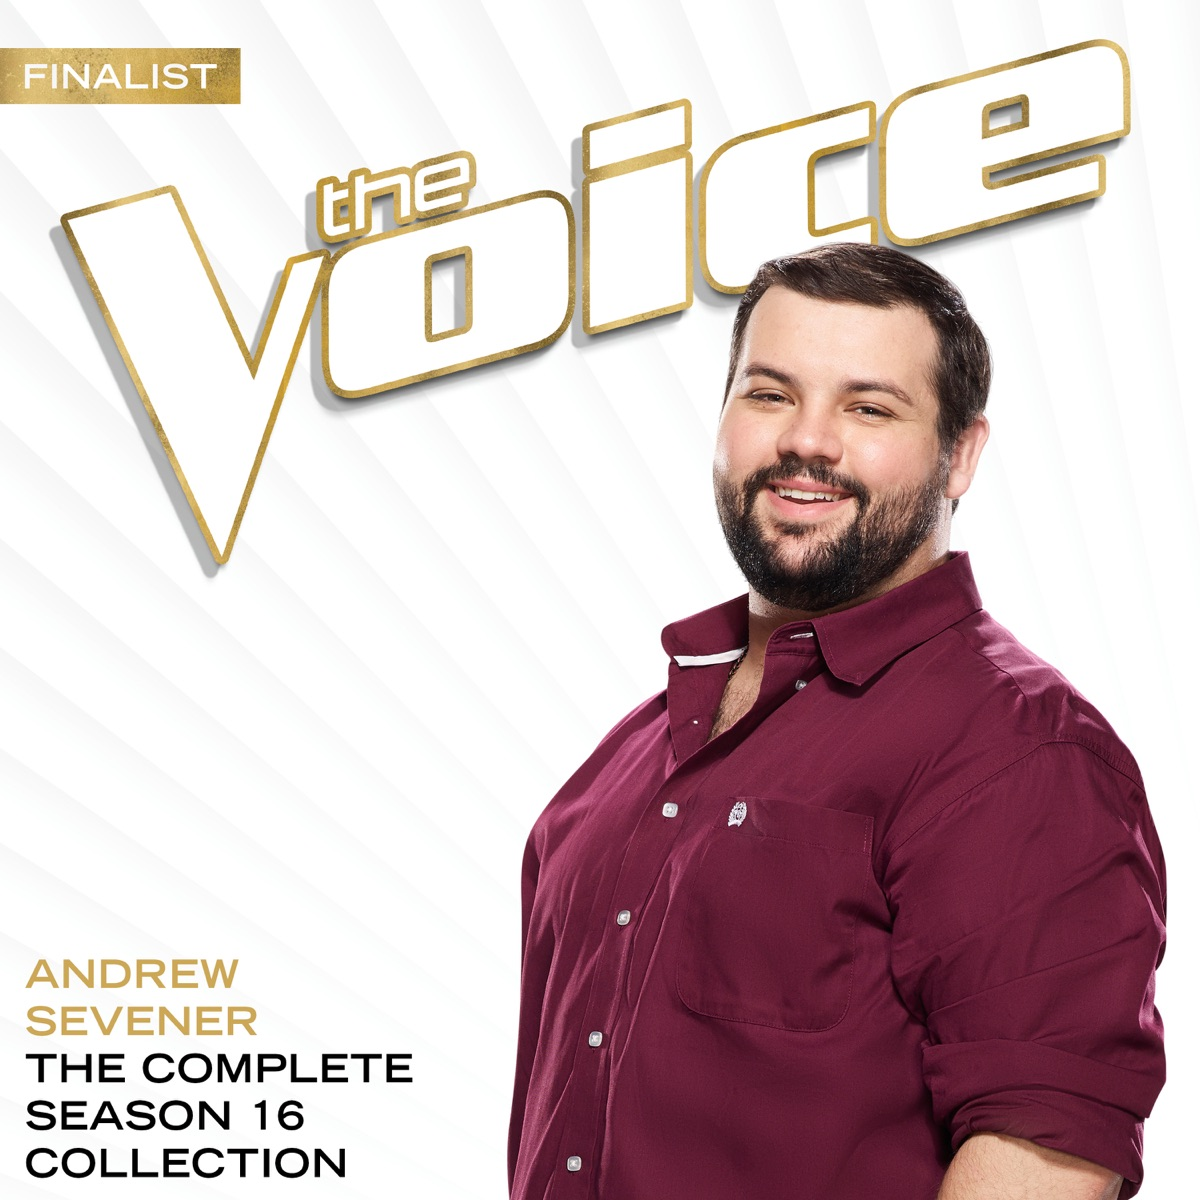 The Season 16 Collection The Voice Performance - EP Andrew Sevener CD cover